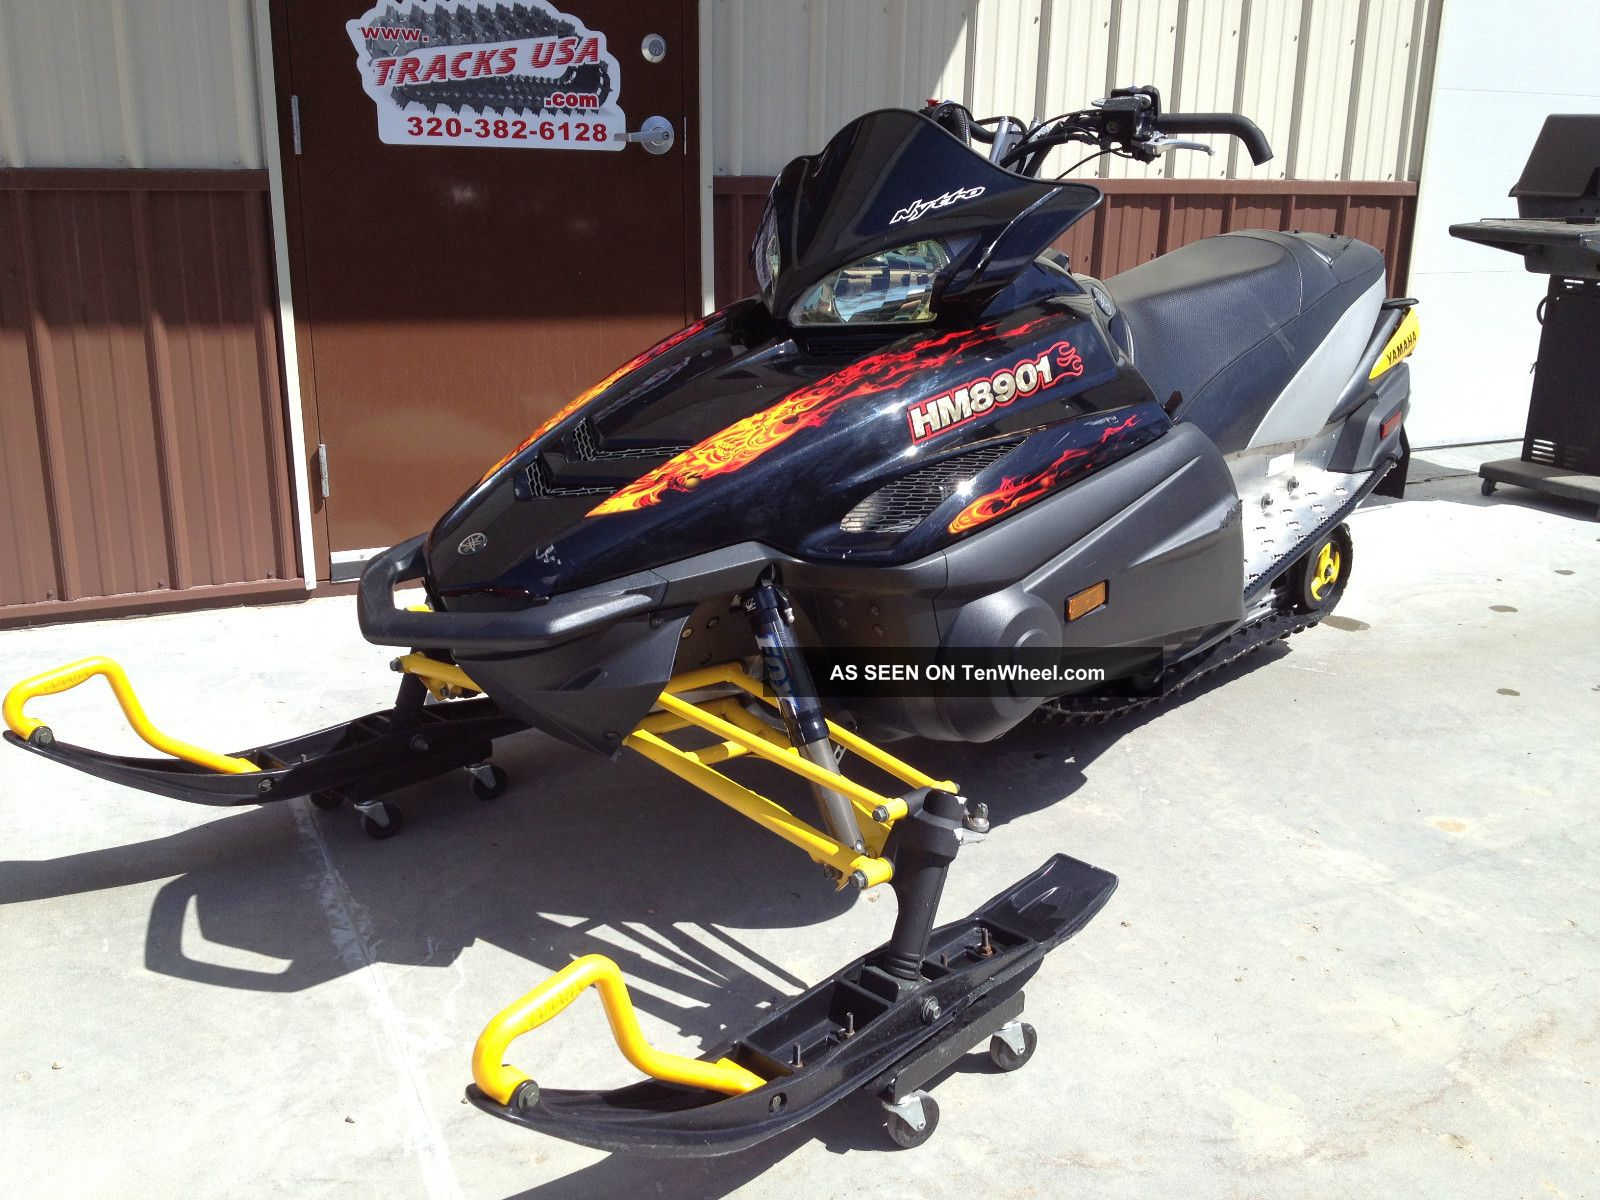 2006 yamaha nytro snowmobile for Yamaha snow mobiles